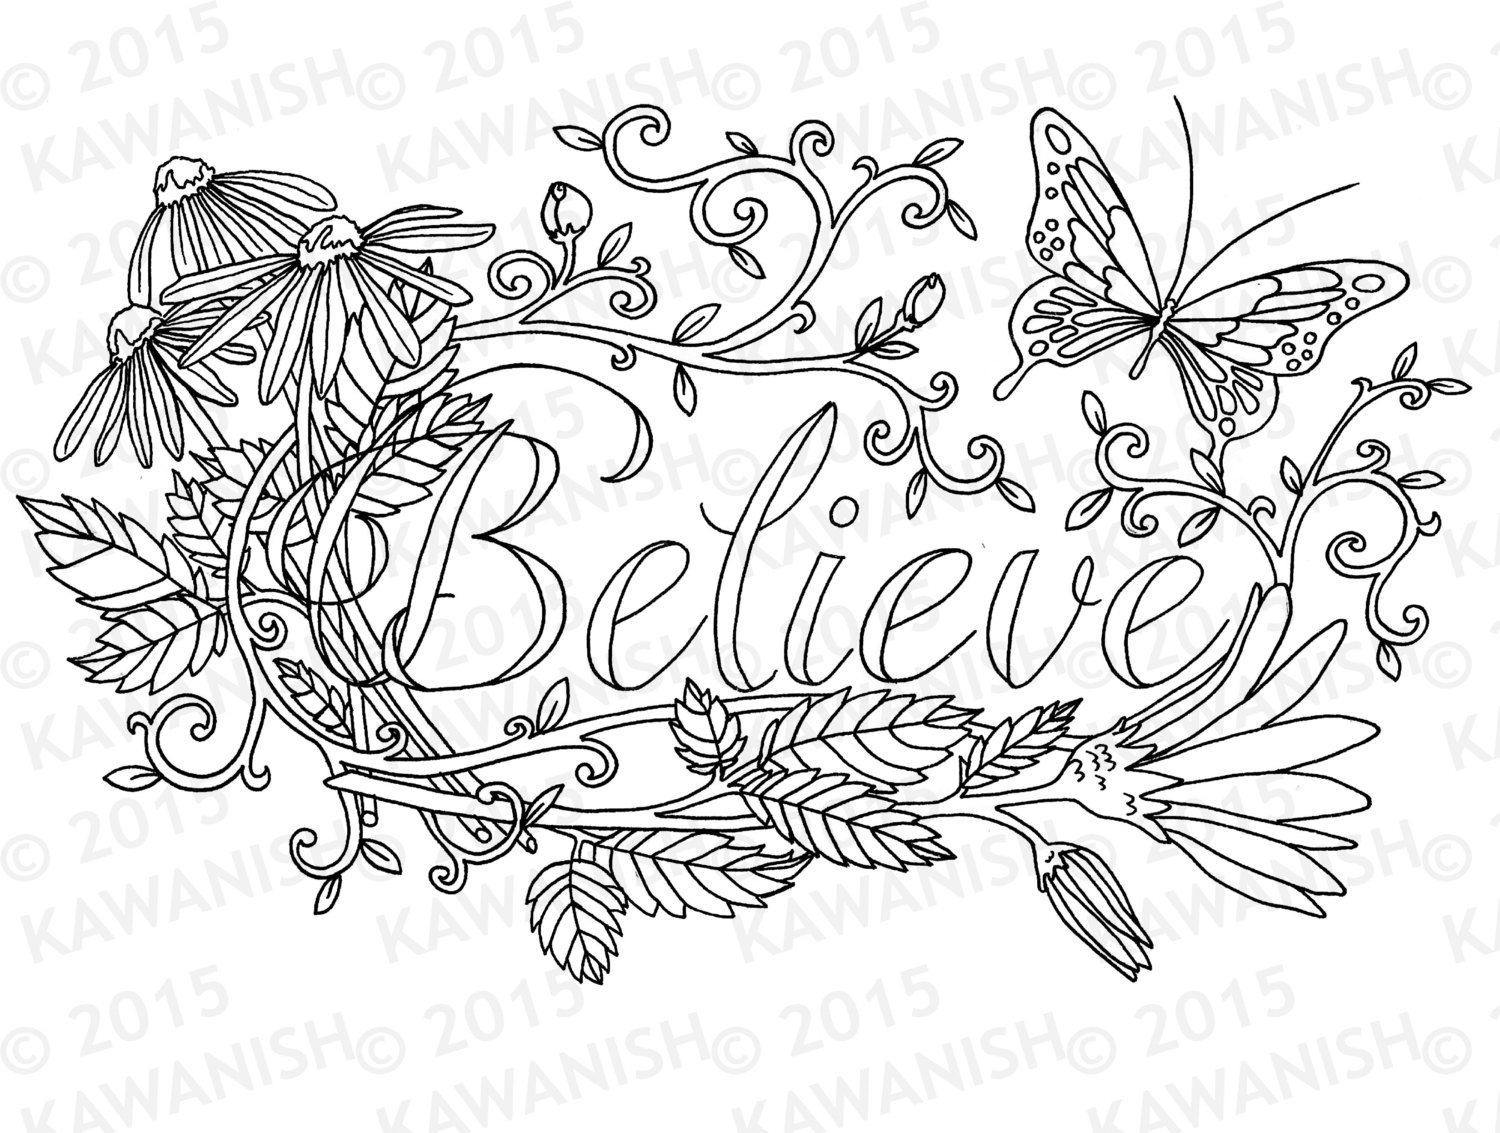 inspirational adult coloring pages - believe flower inspirational adult